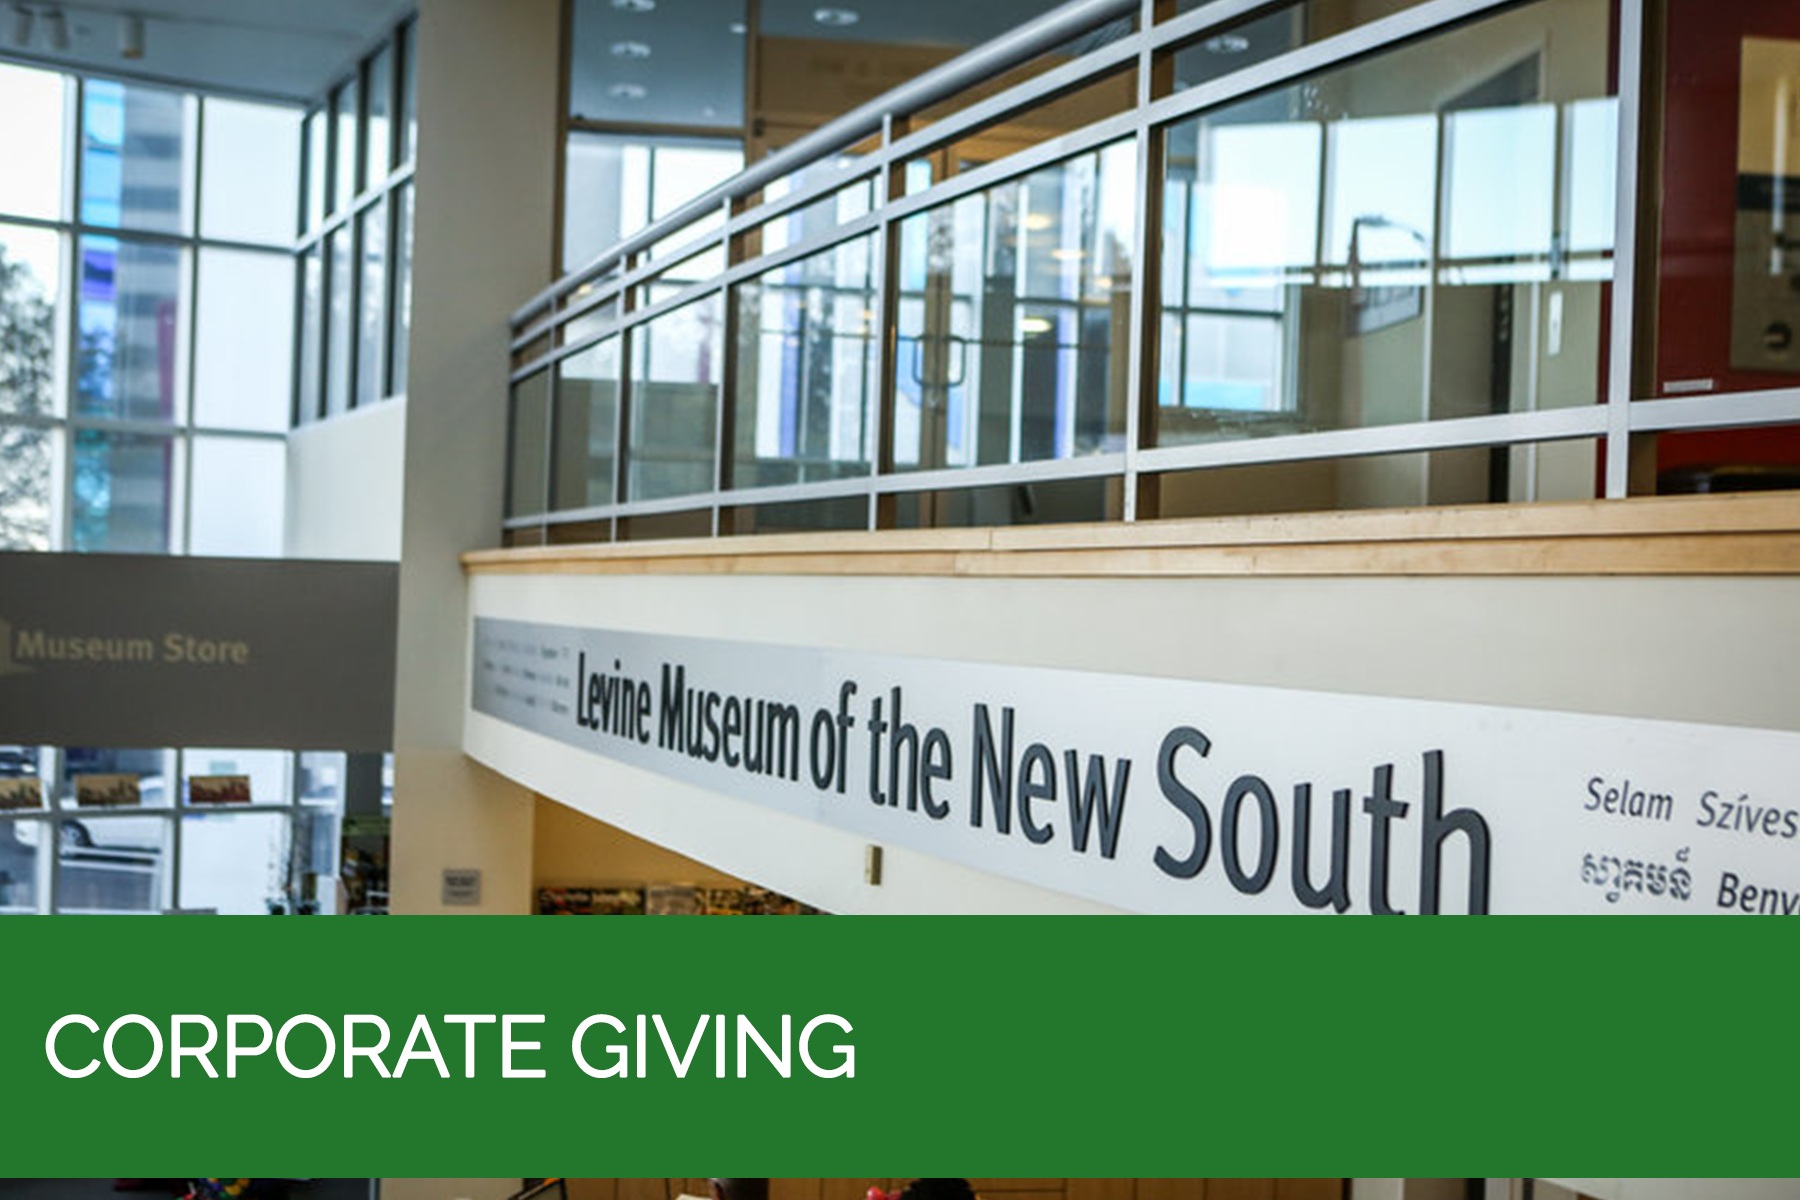 Consider Corporate Giving